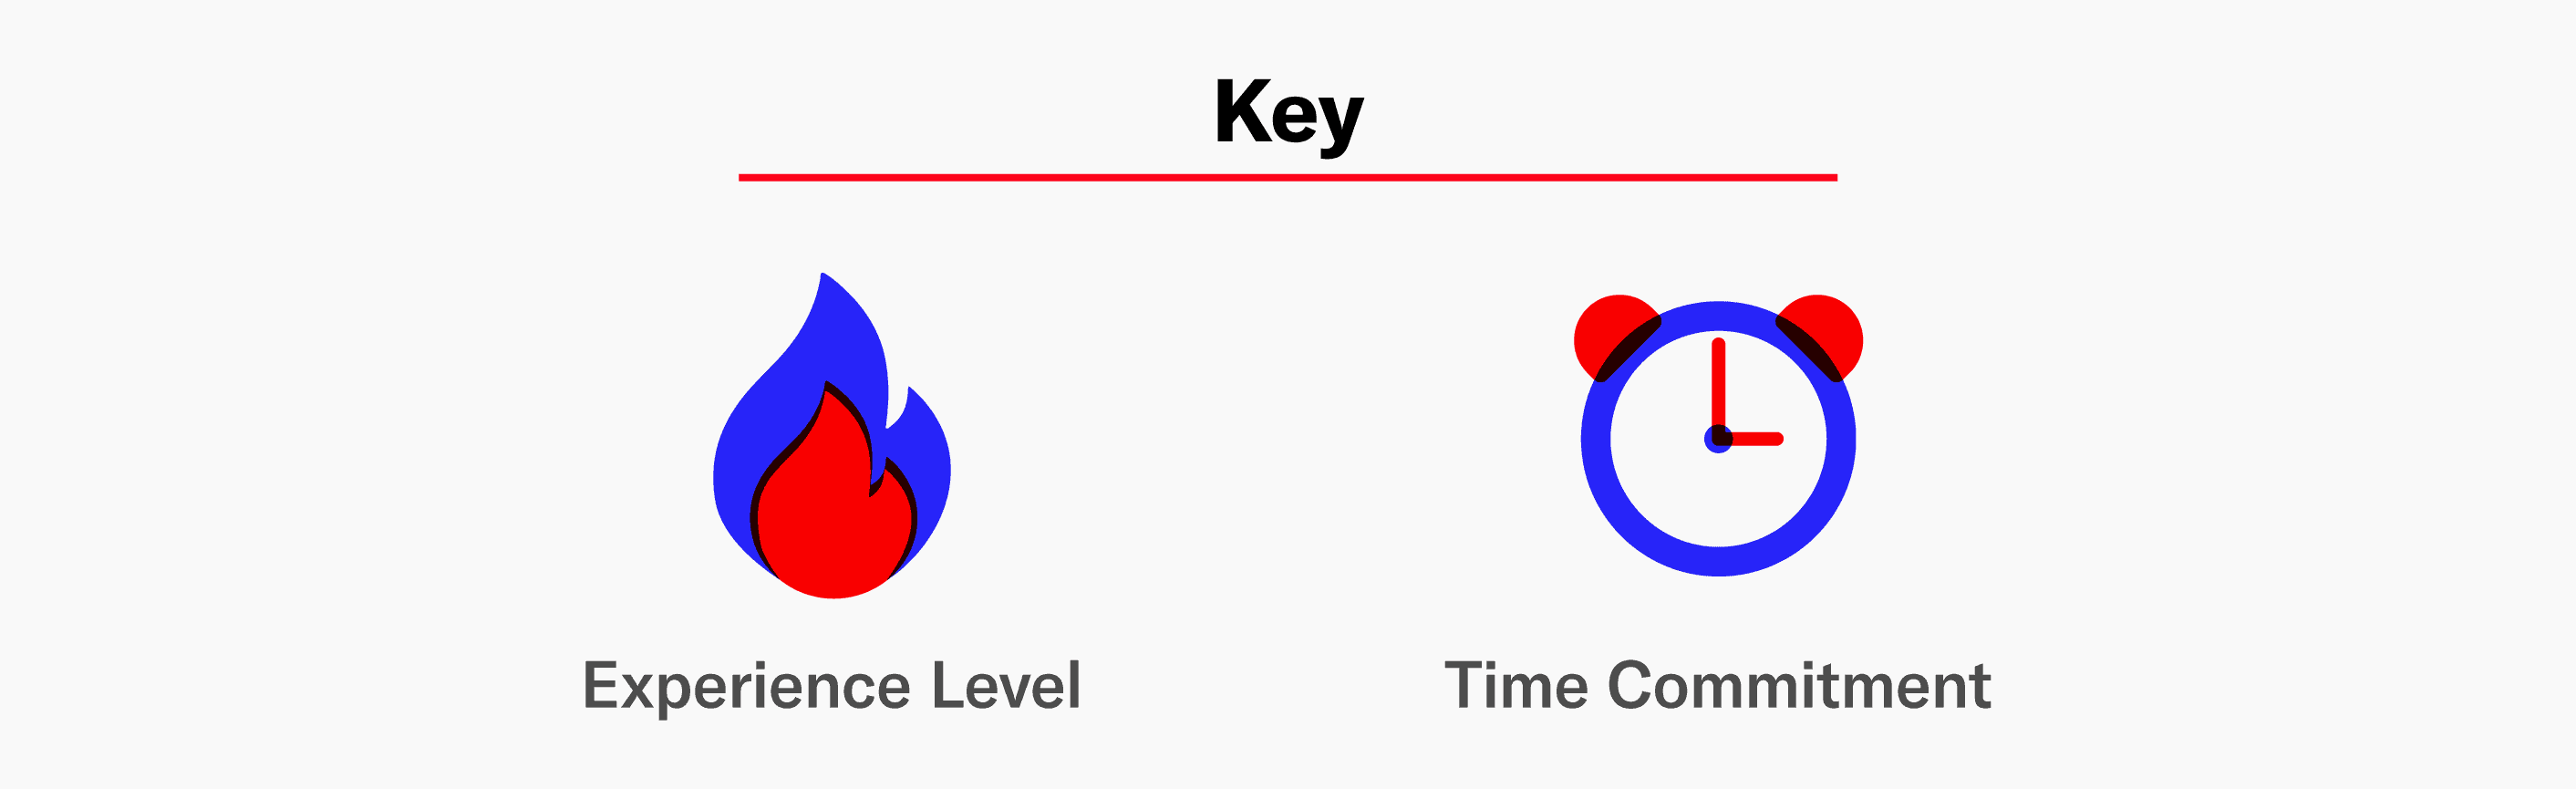 Key showing the a red and blue flame equals experience level and a red and blue clock equals time commitment